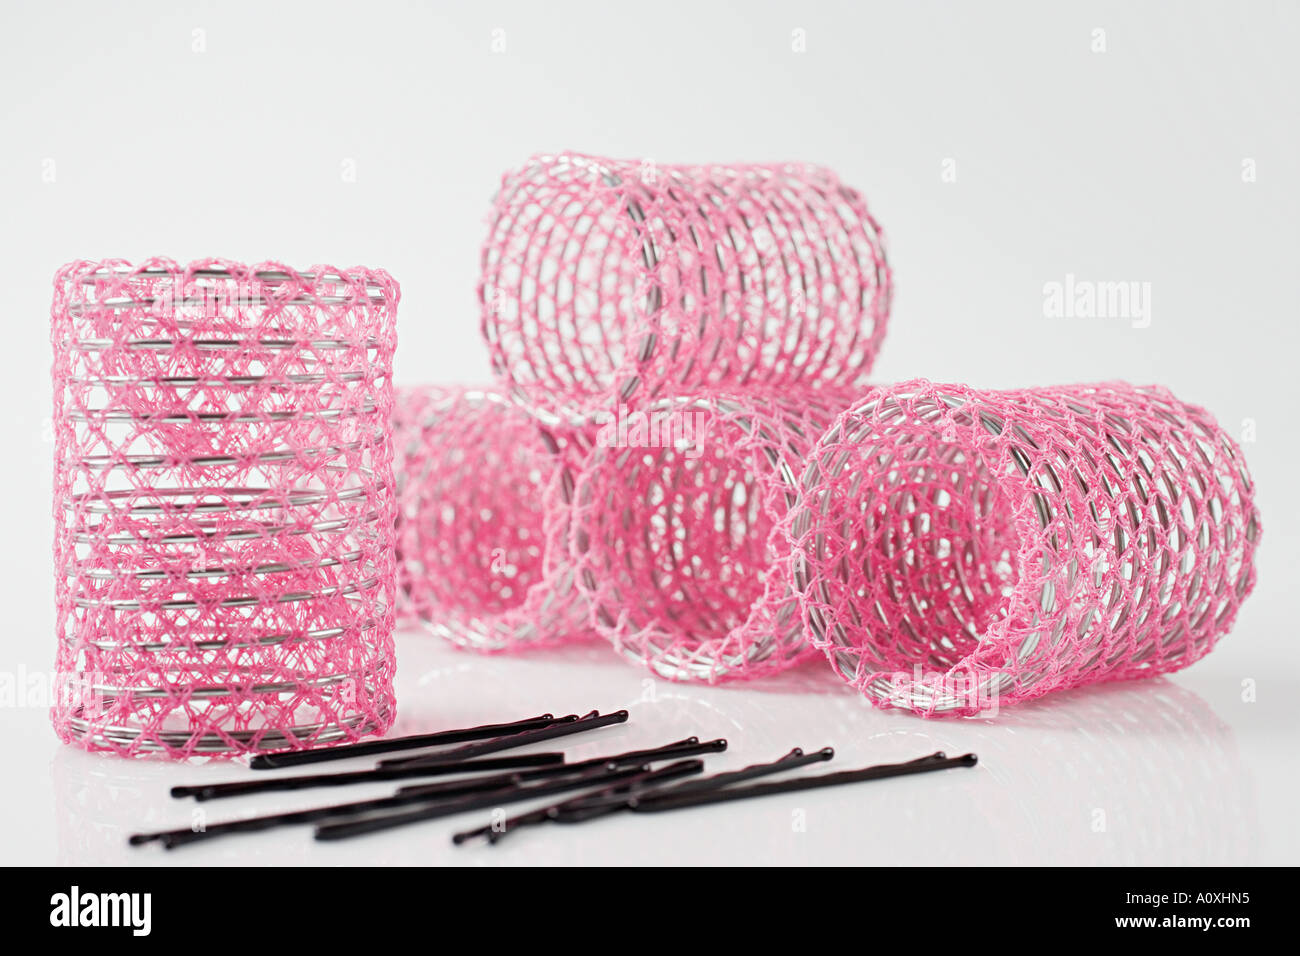 Hair rollers and hairgrips - Stock Image